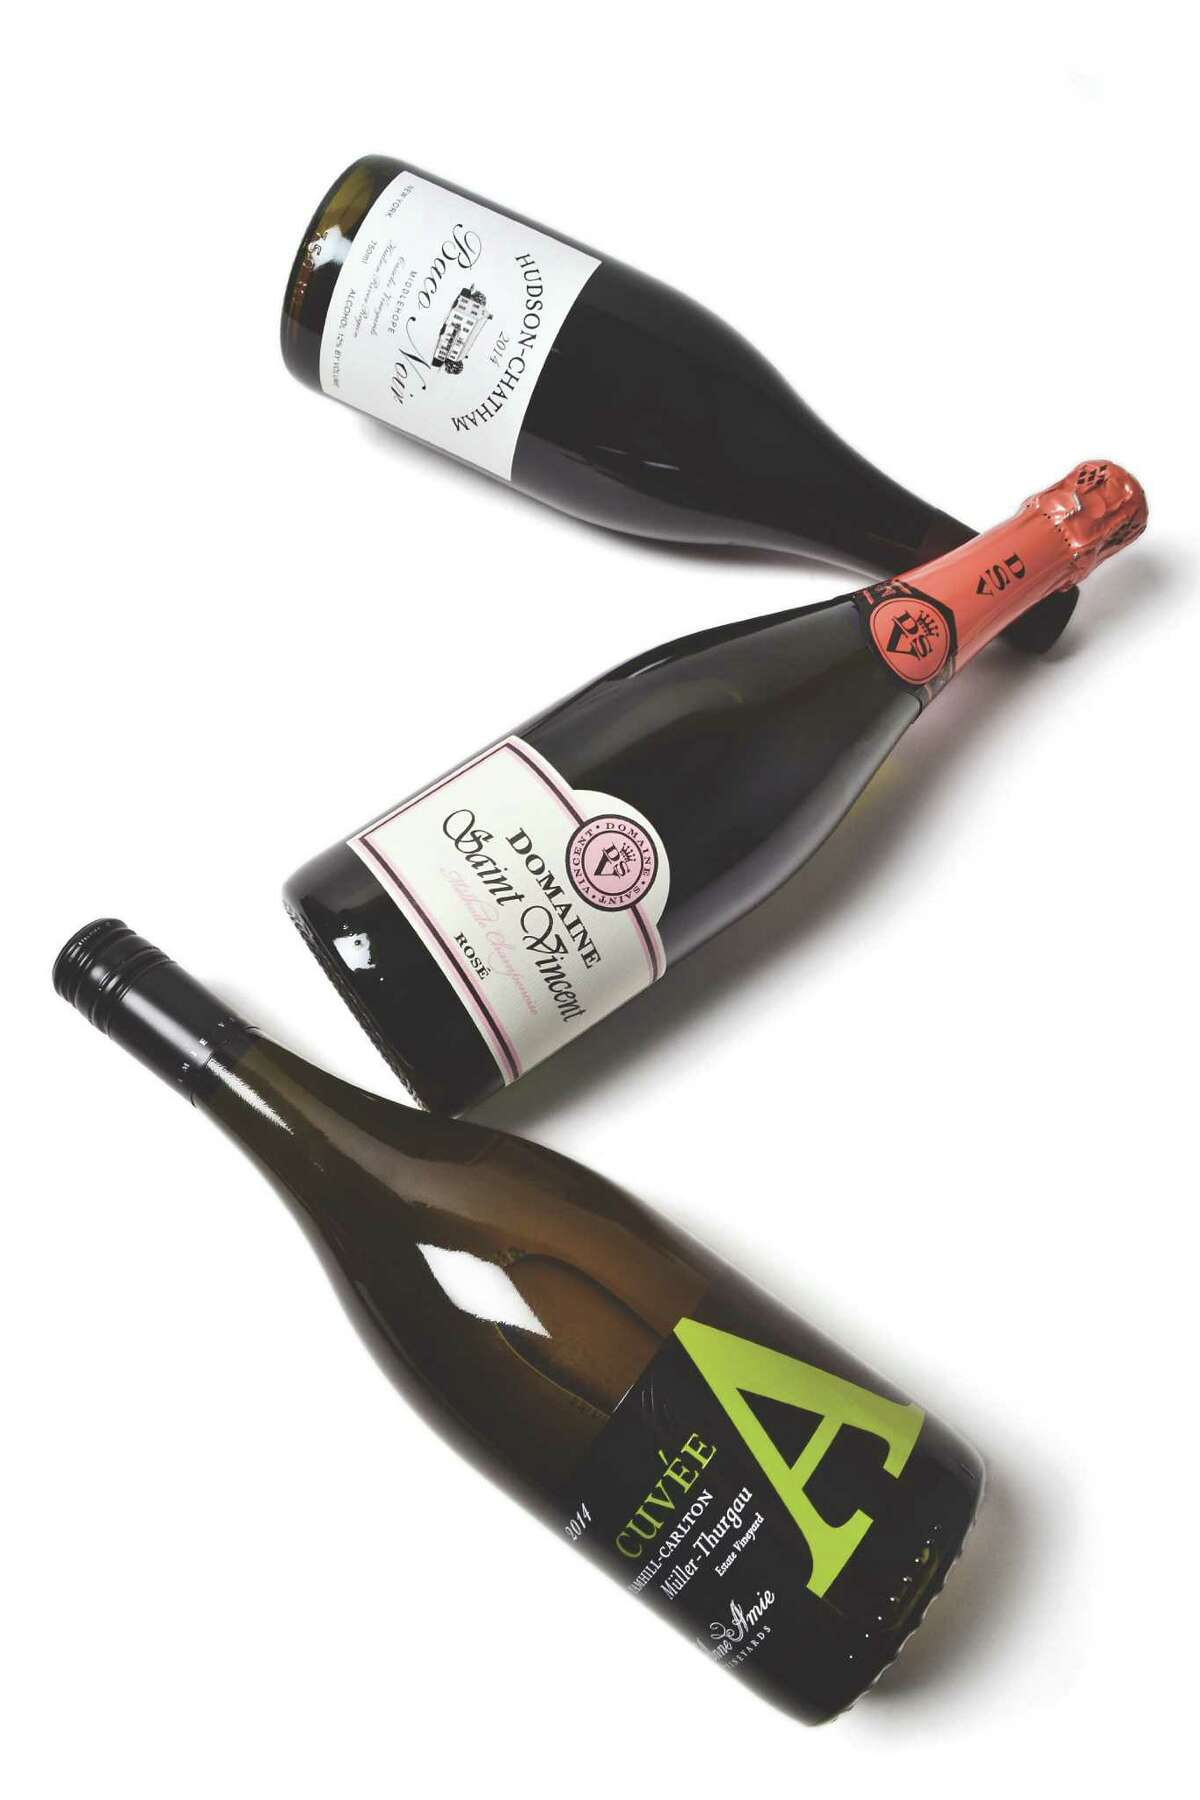 A selection of wines for April from Mark Brogna of Capital Wine in Albany. From top, Baco Noir Middle Hope Vineyard (2014) $23.99, Domaine Saint ?Vincent Rose $12.99, Baco Noir Middle Hope Vineyard (2014) $23.99 (Colleen Ingerto / Times Union)